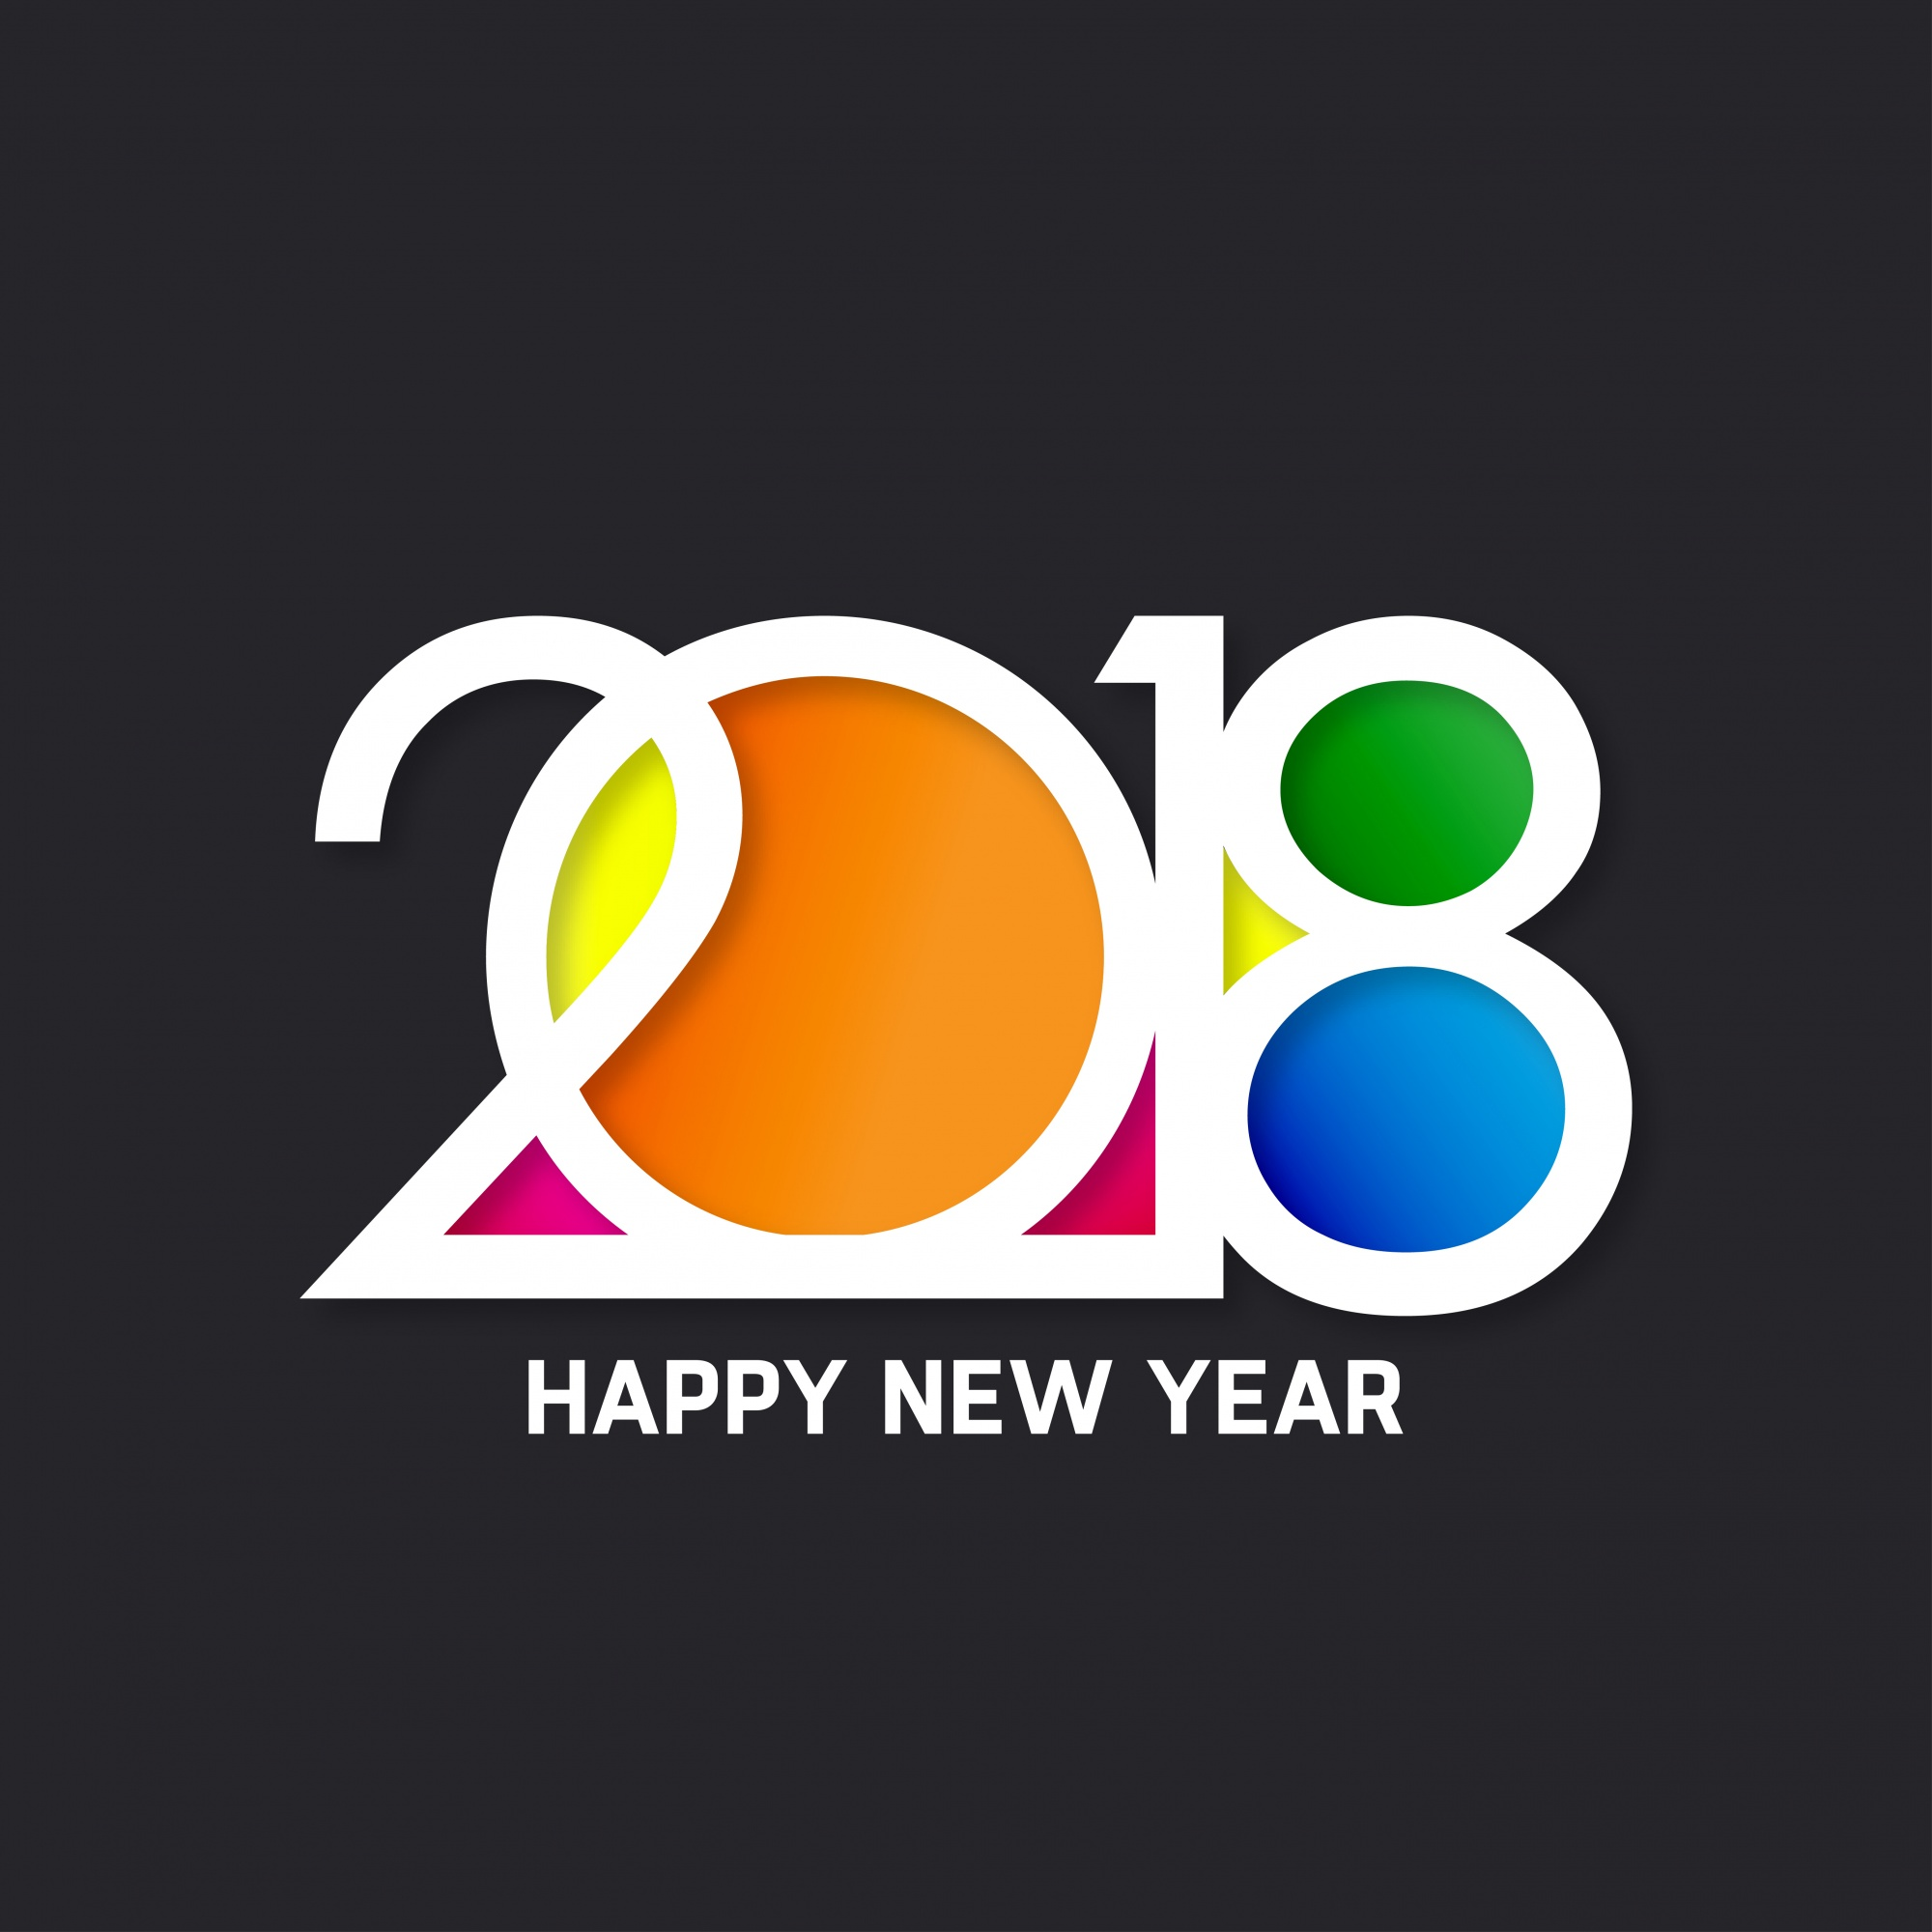 Colorful text design for new year 2018